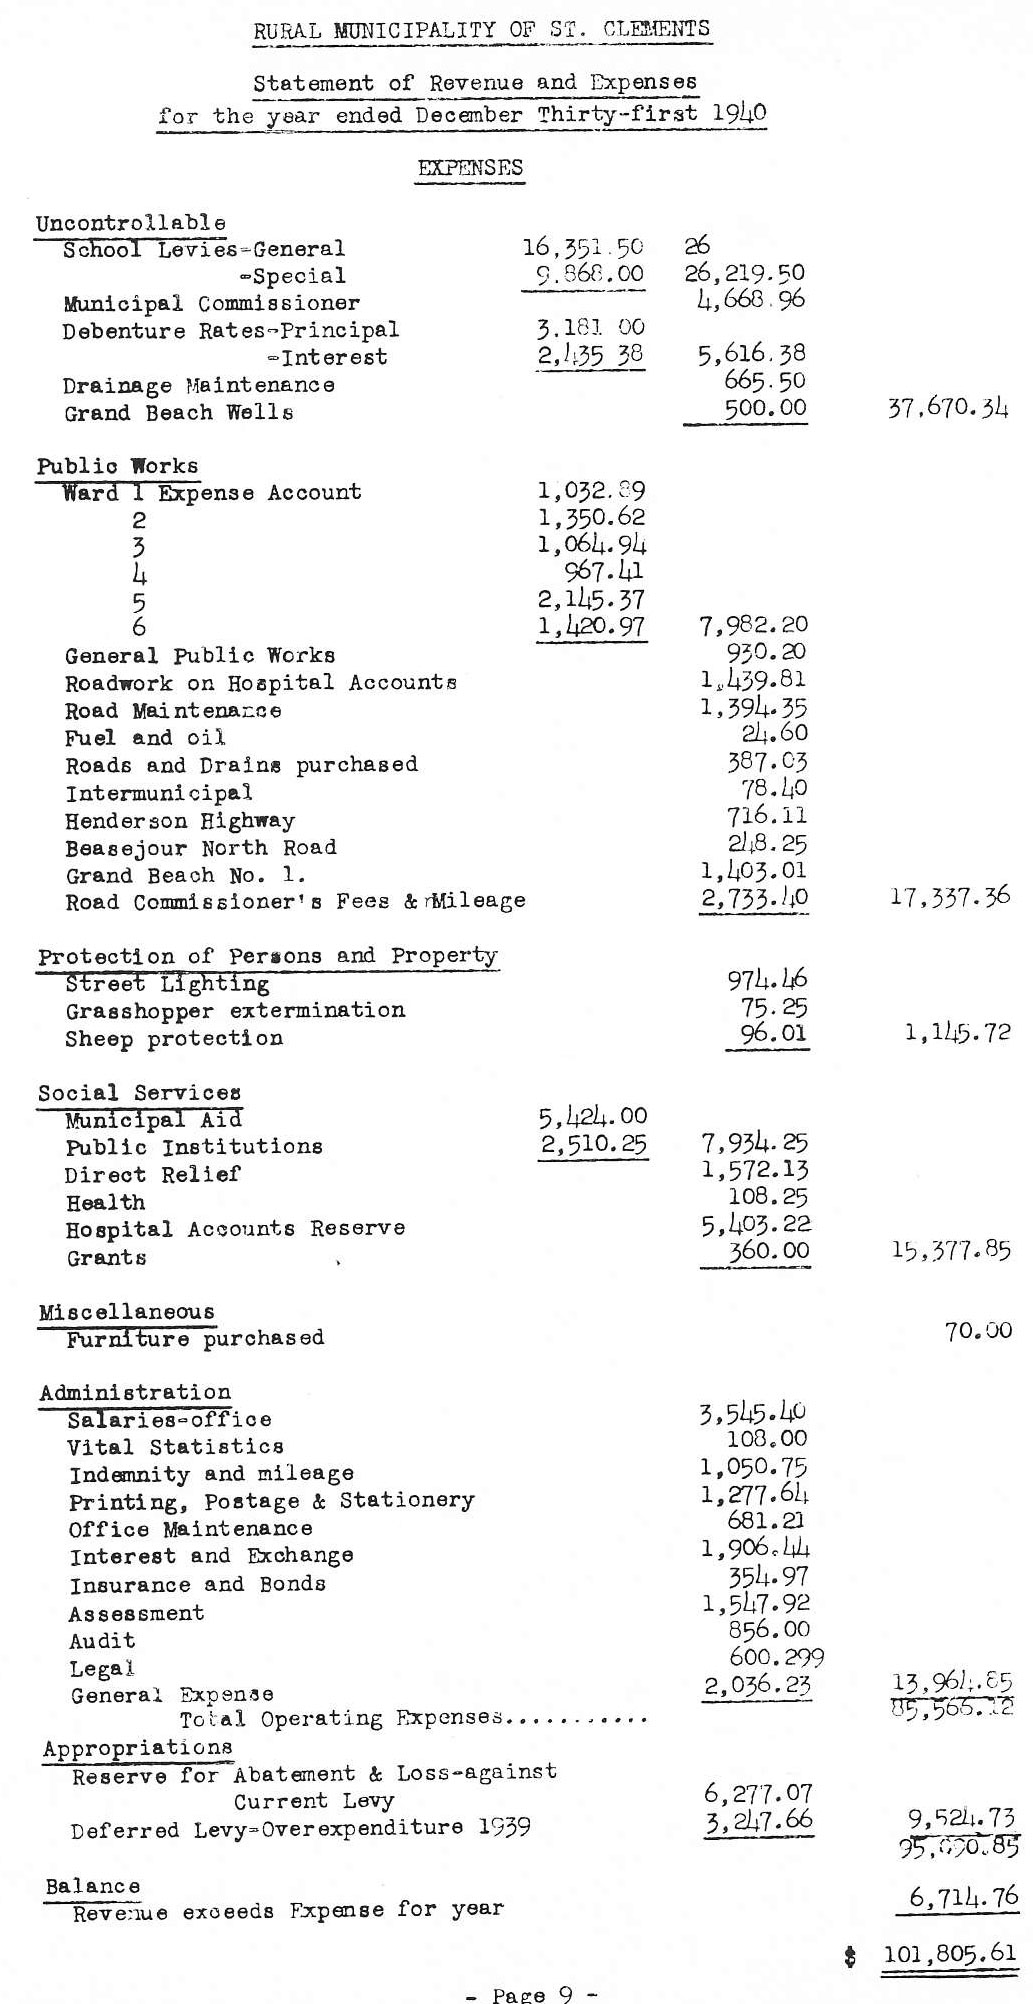 Financial Statement 1940 page 1